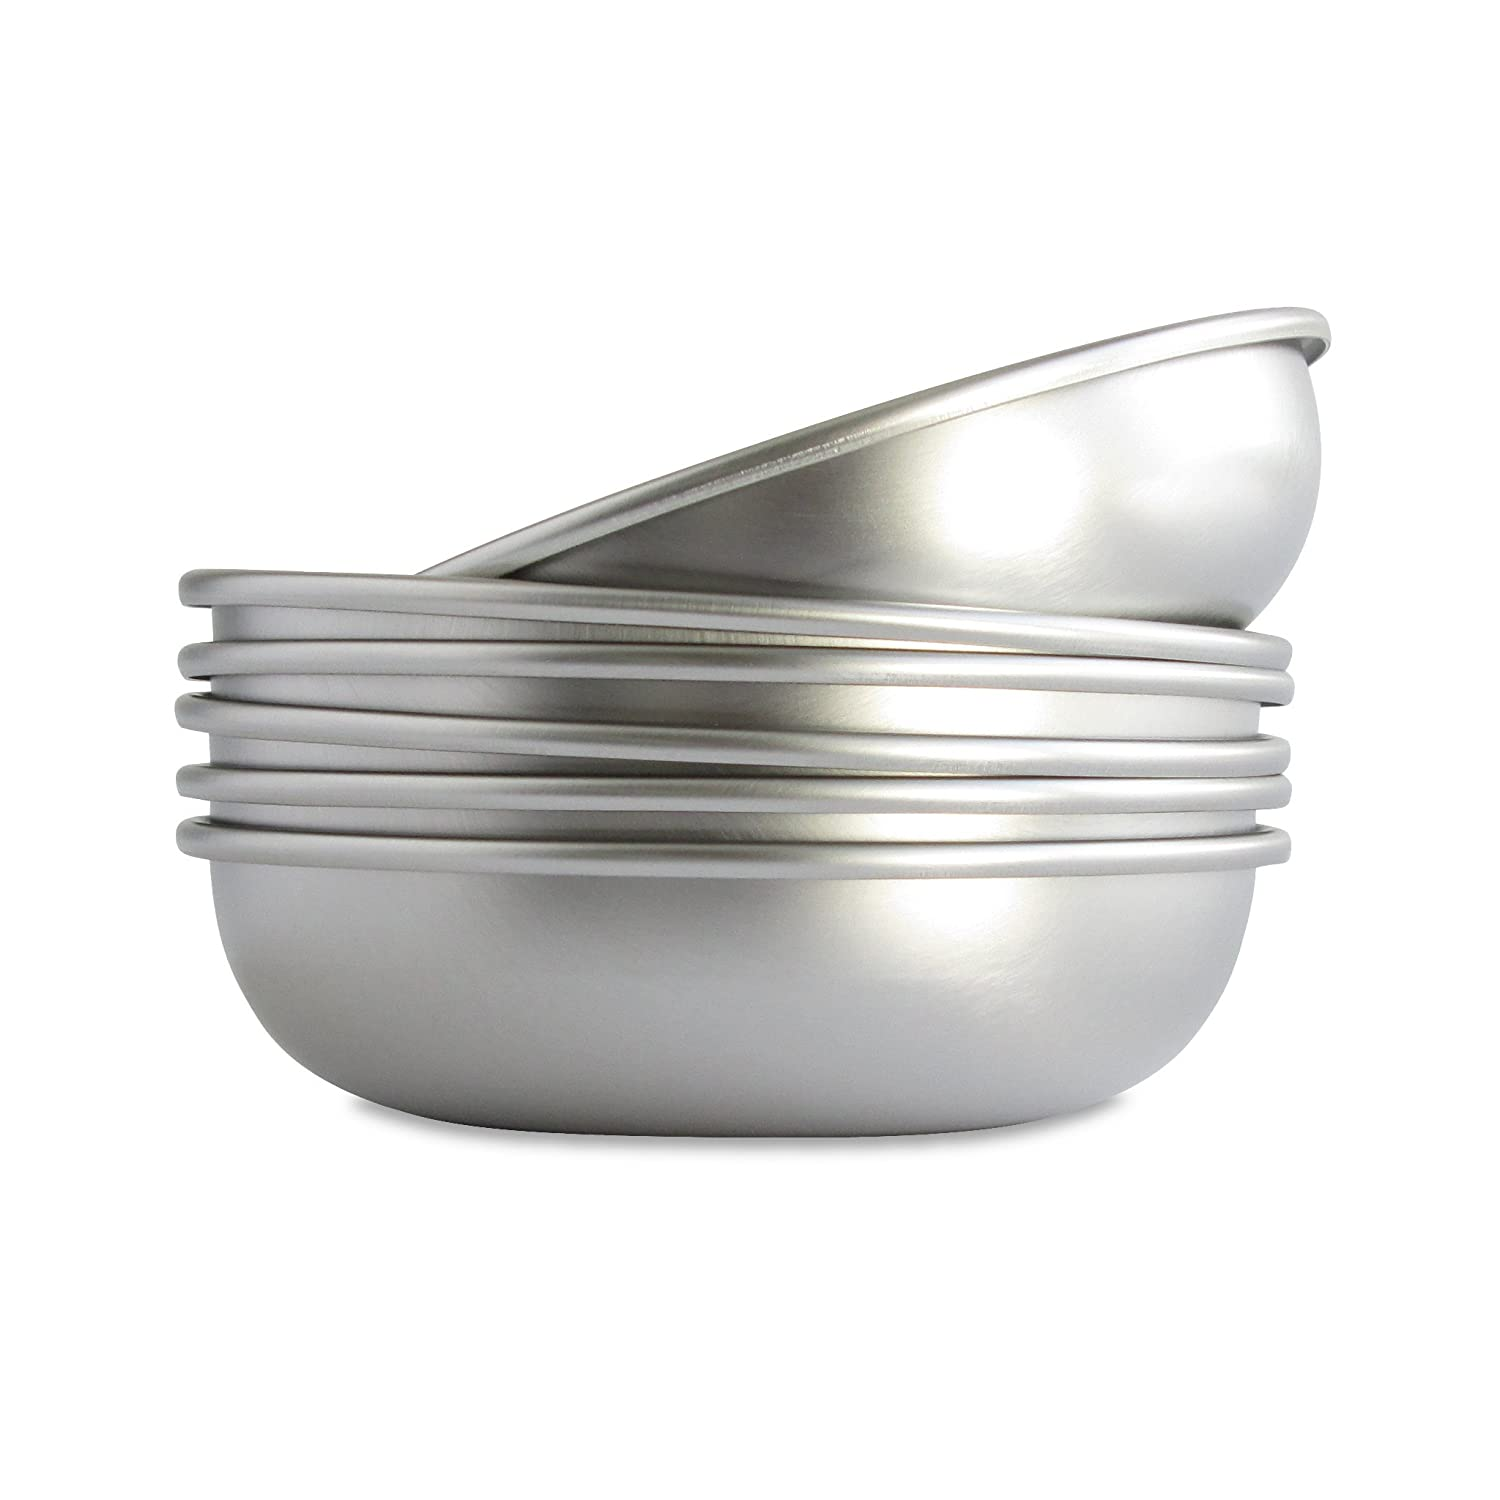 6-PACK Basis Pet Made in The USA Low Profile Stainless Steel Cat Dish, 6 Pack